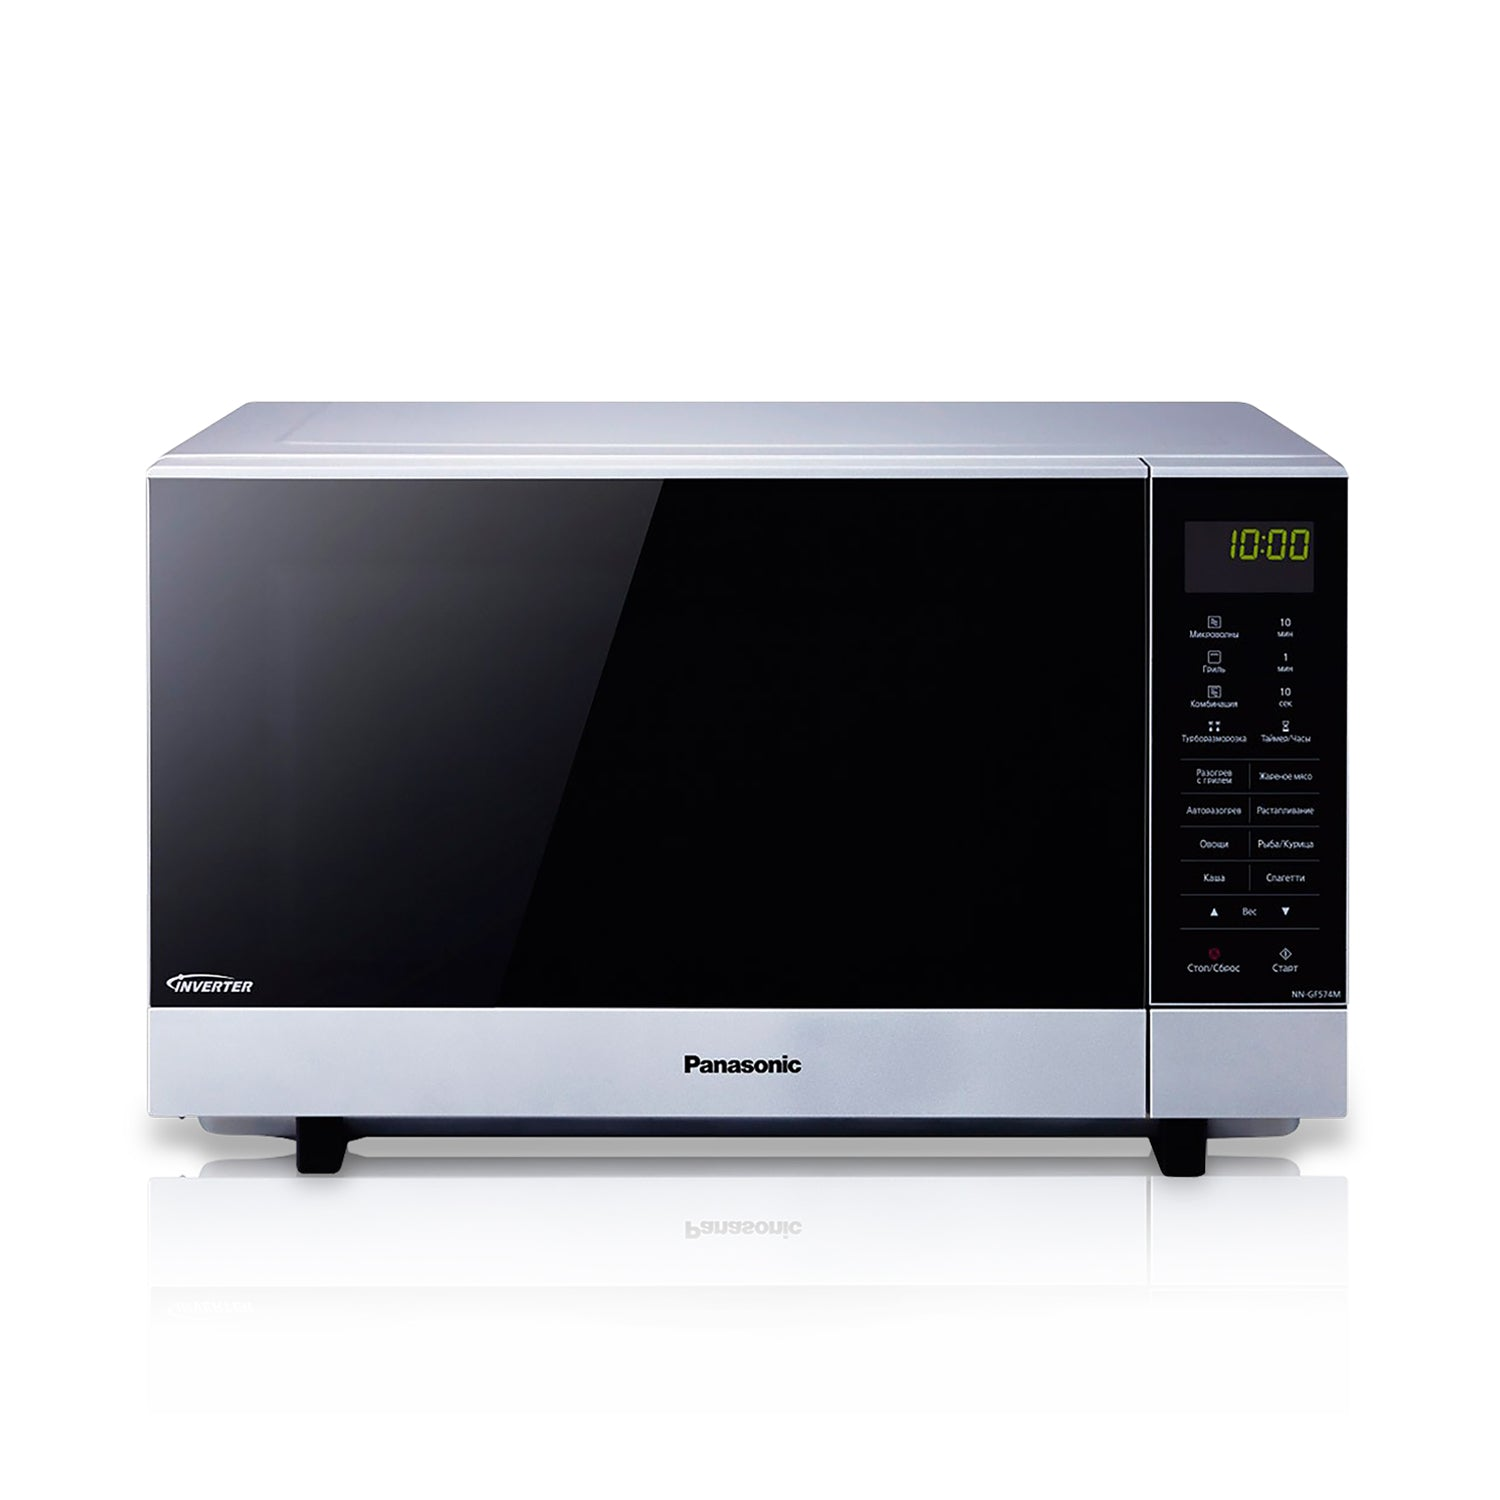 27L Grill Microwave Oven